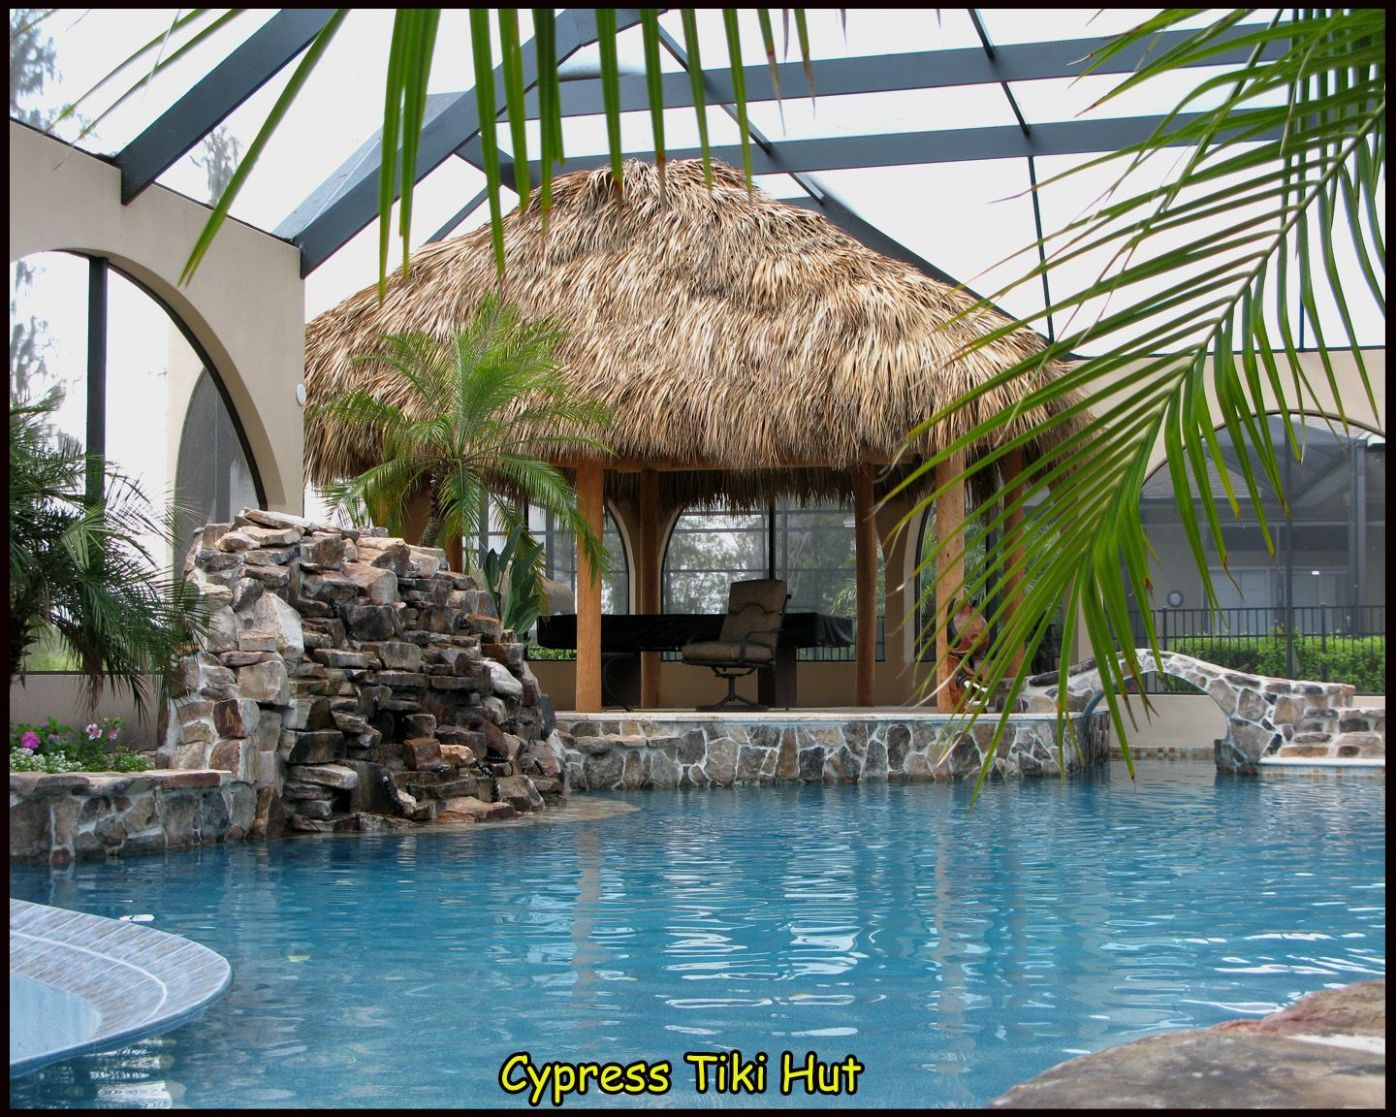 Custom Tiki Huts (With images) | Tiki hut, Tiki bar, Cool pools - pool hut ideas